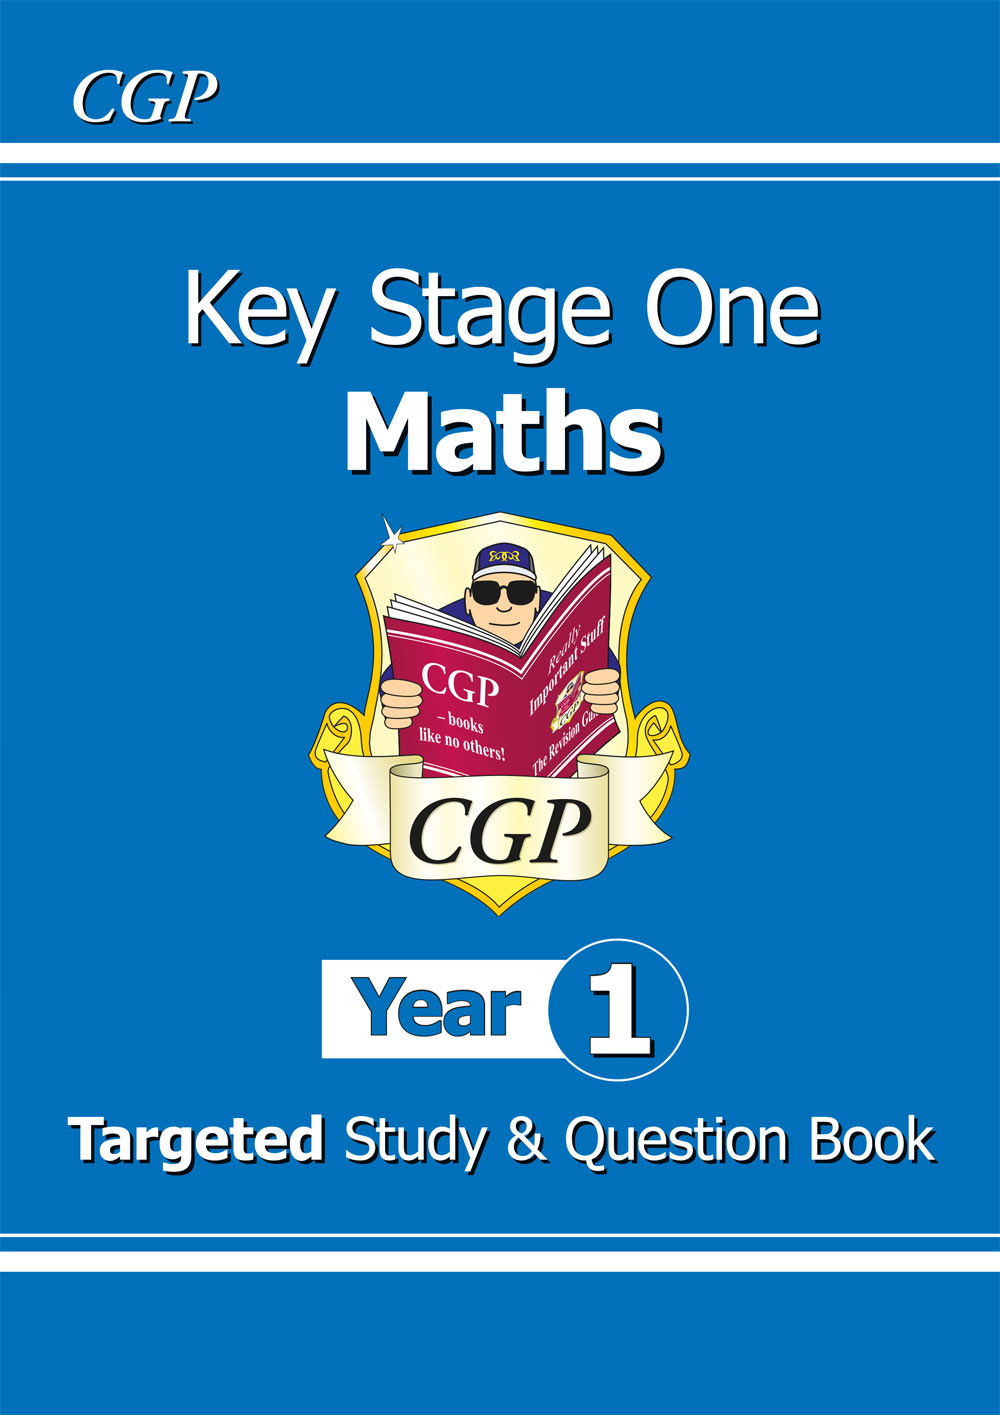 M1R11 - KS1 Maths Targeted Study & Question Book - Year 1